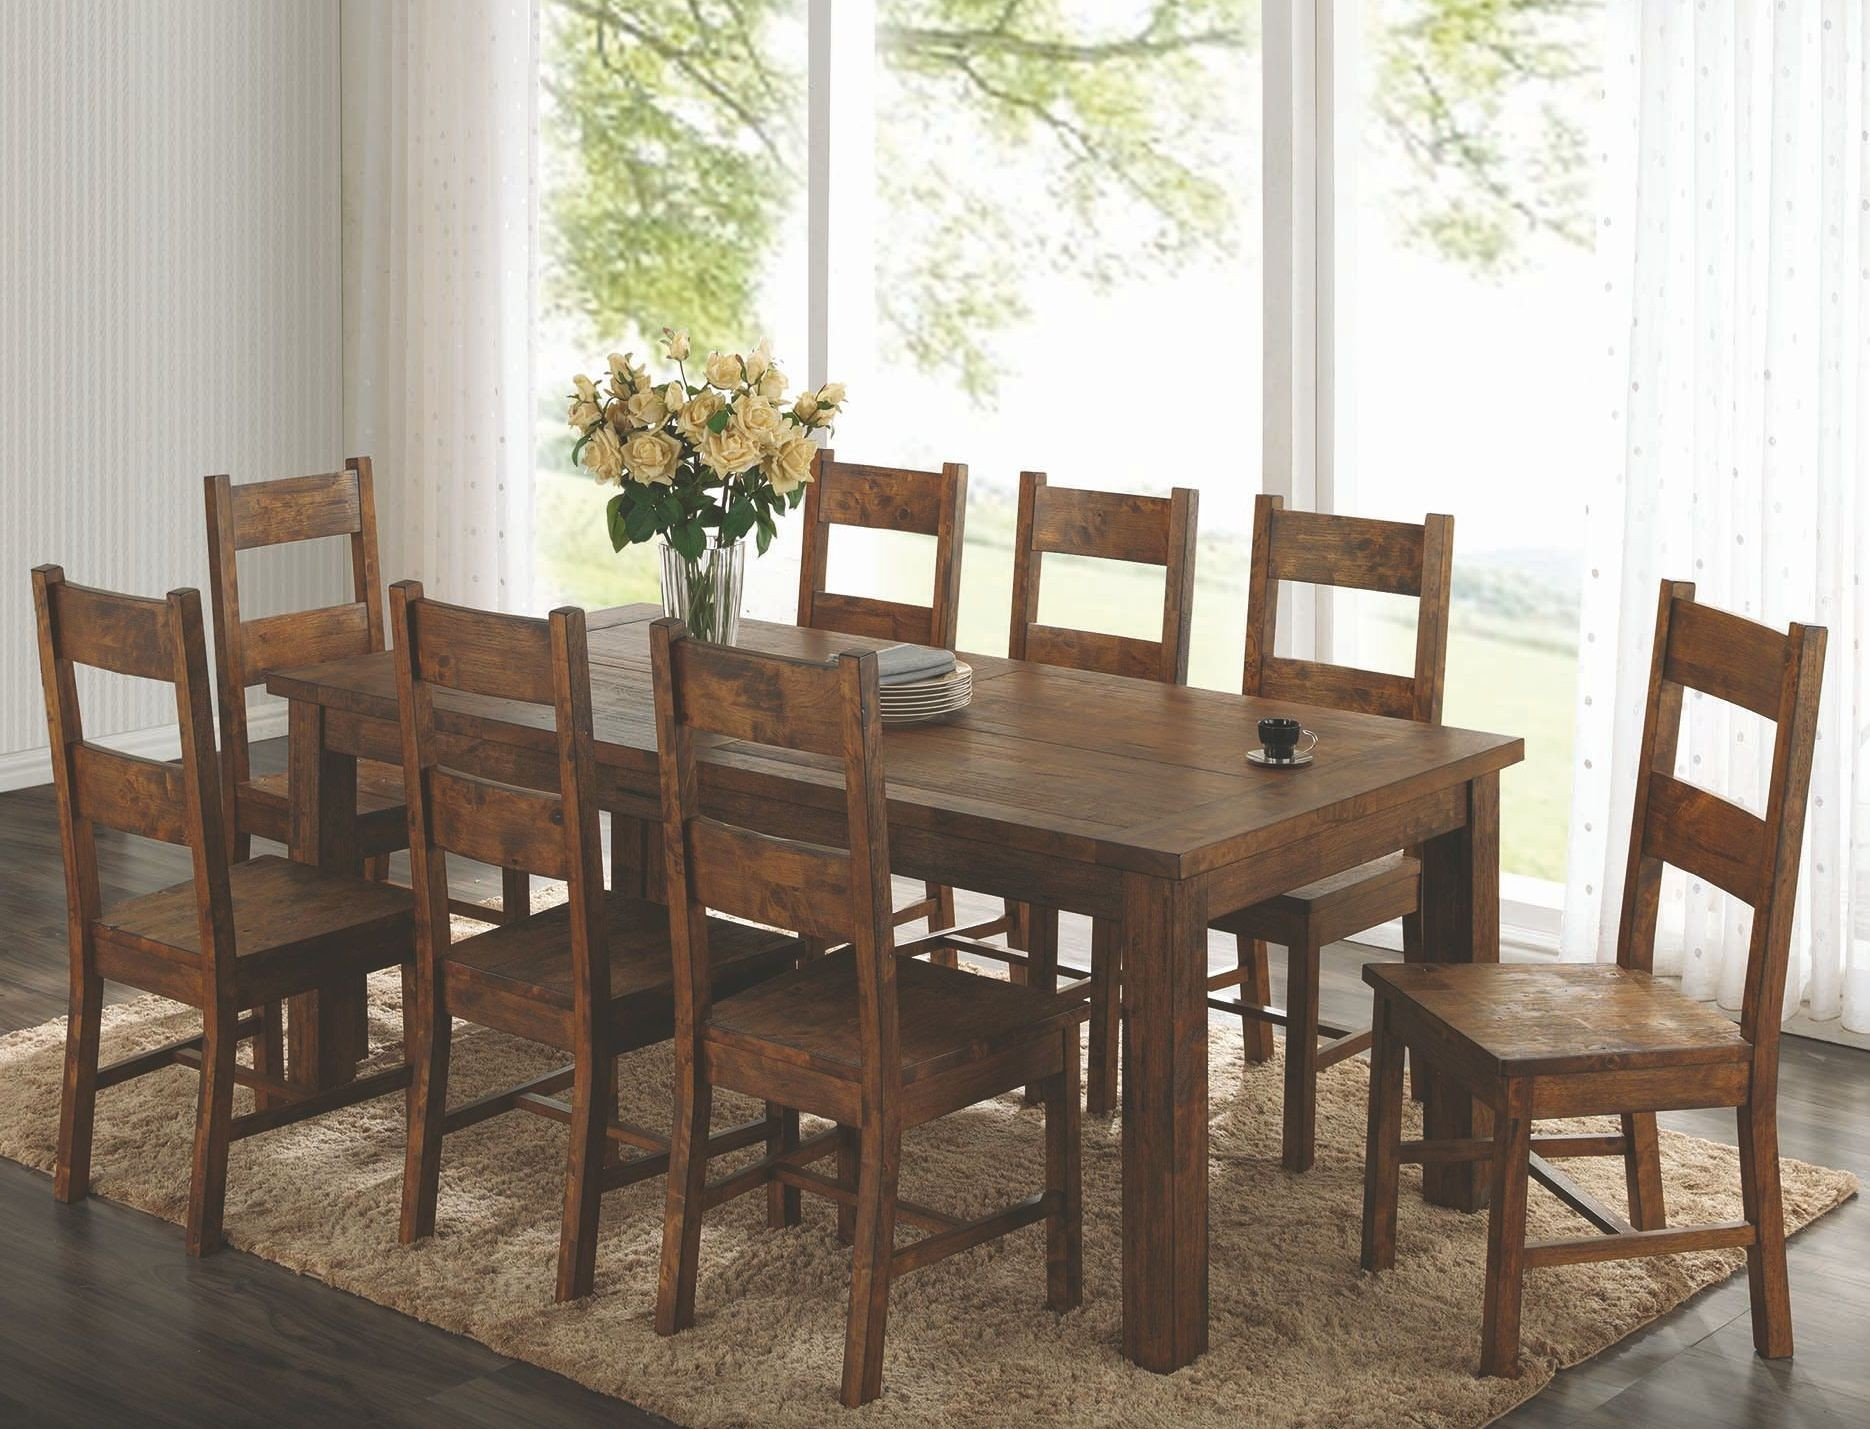 Coleman rustic golden brown rectangular dining room set for Rustic dining room sets